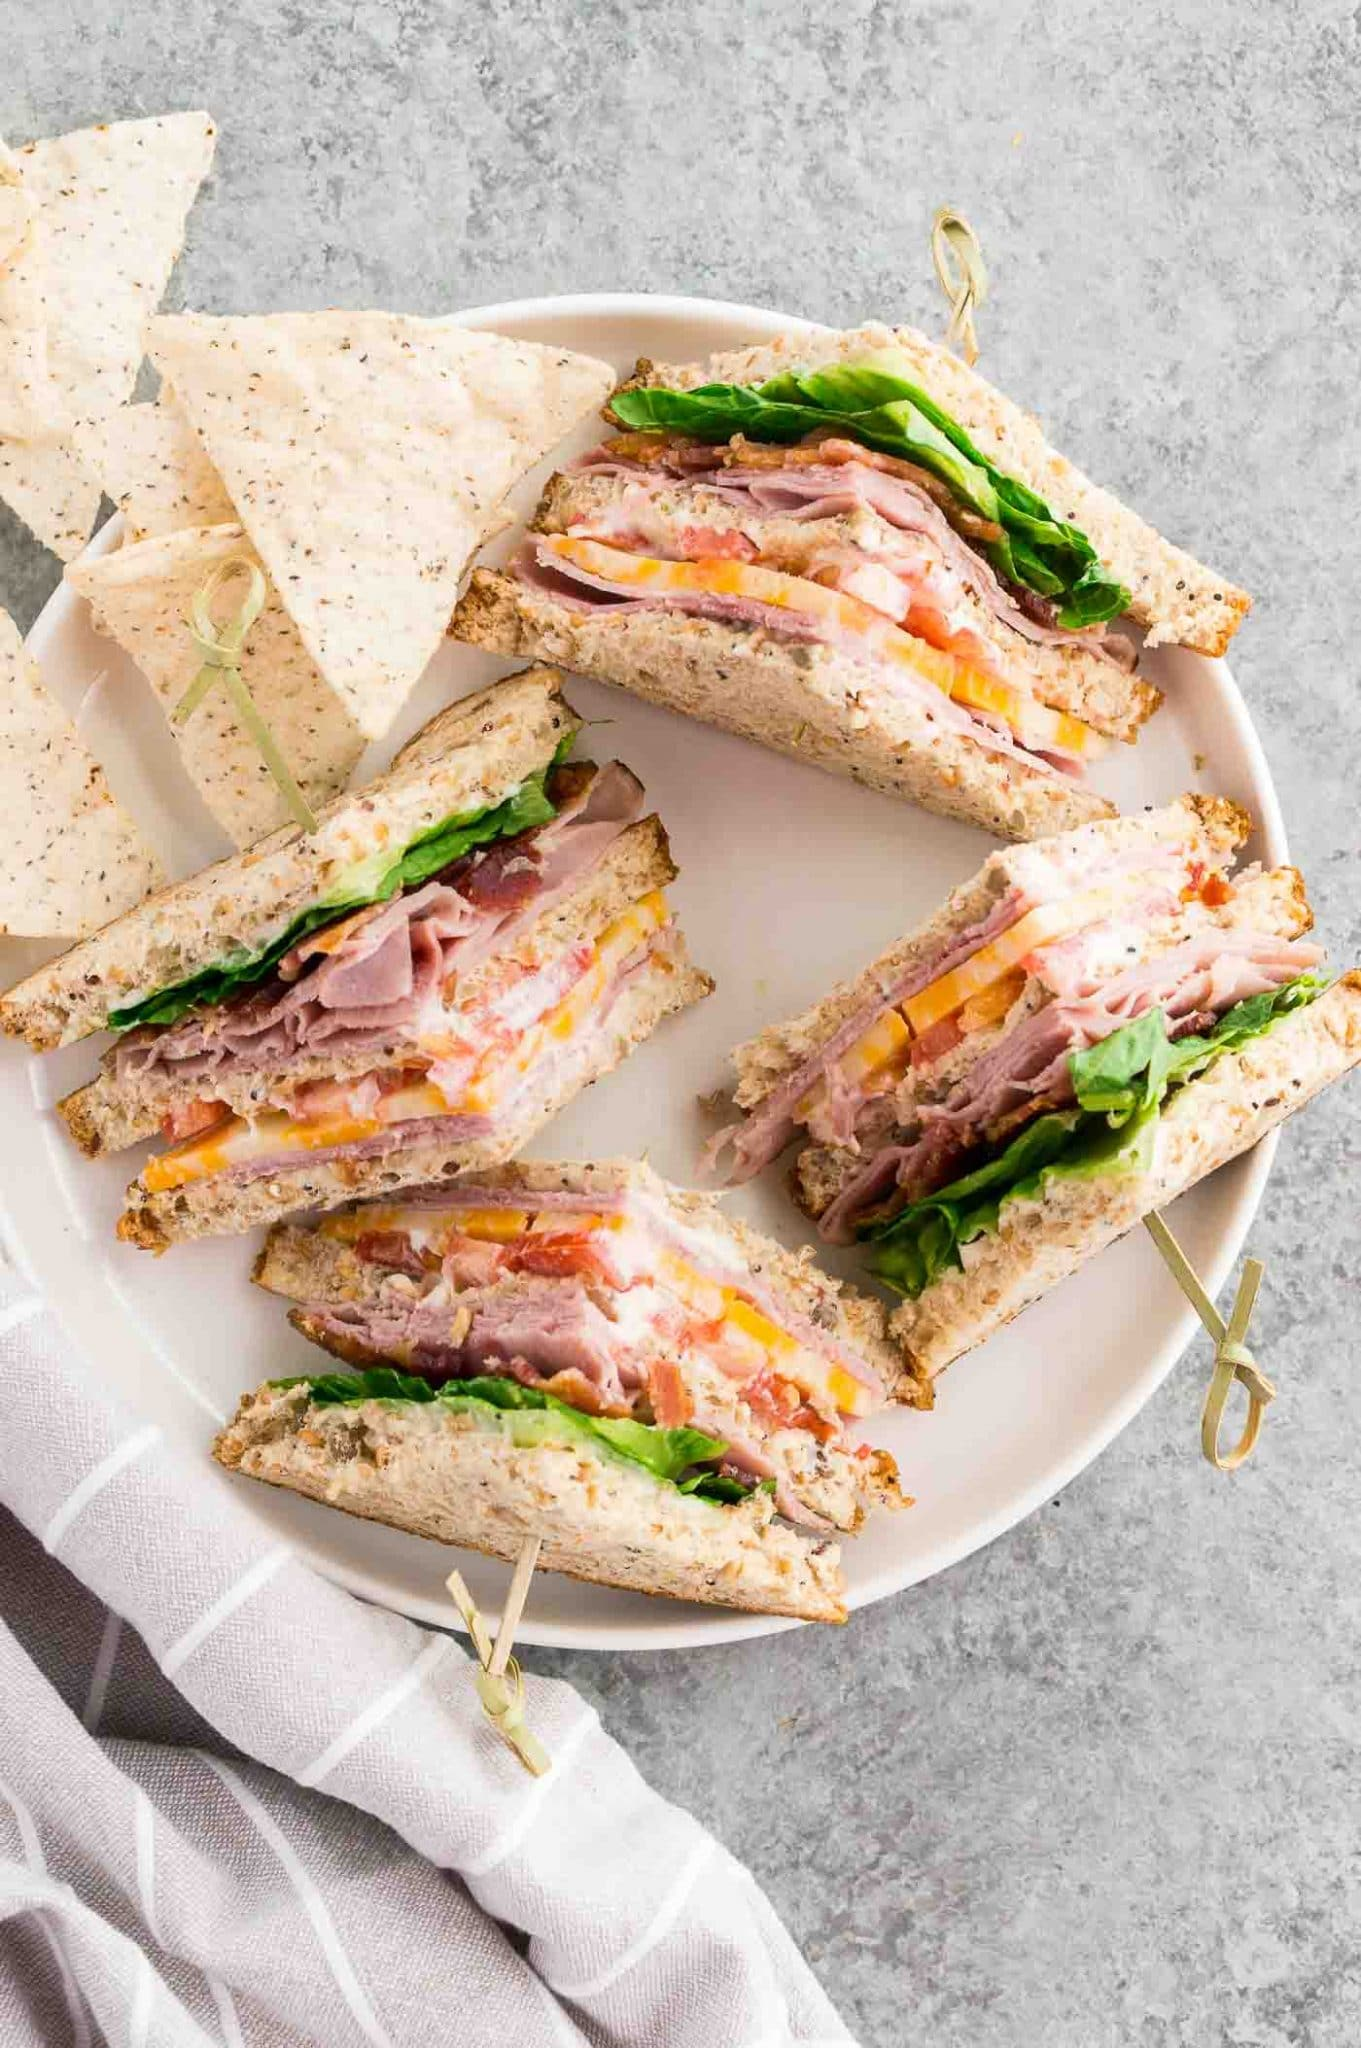 club sandwiches and chips on a plate